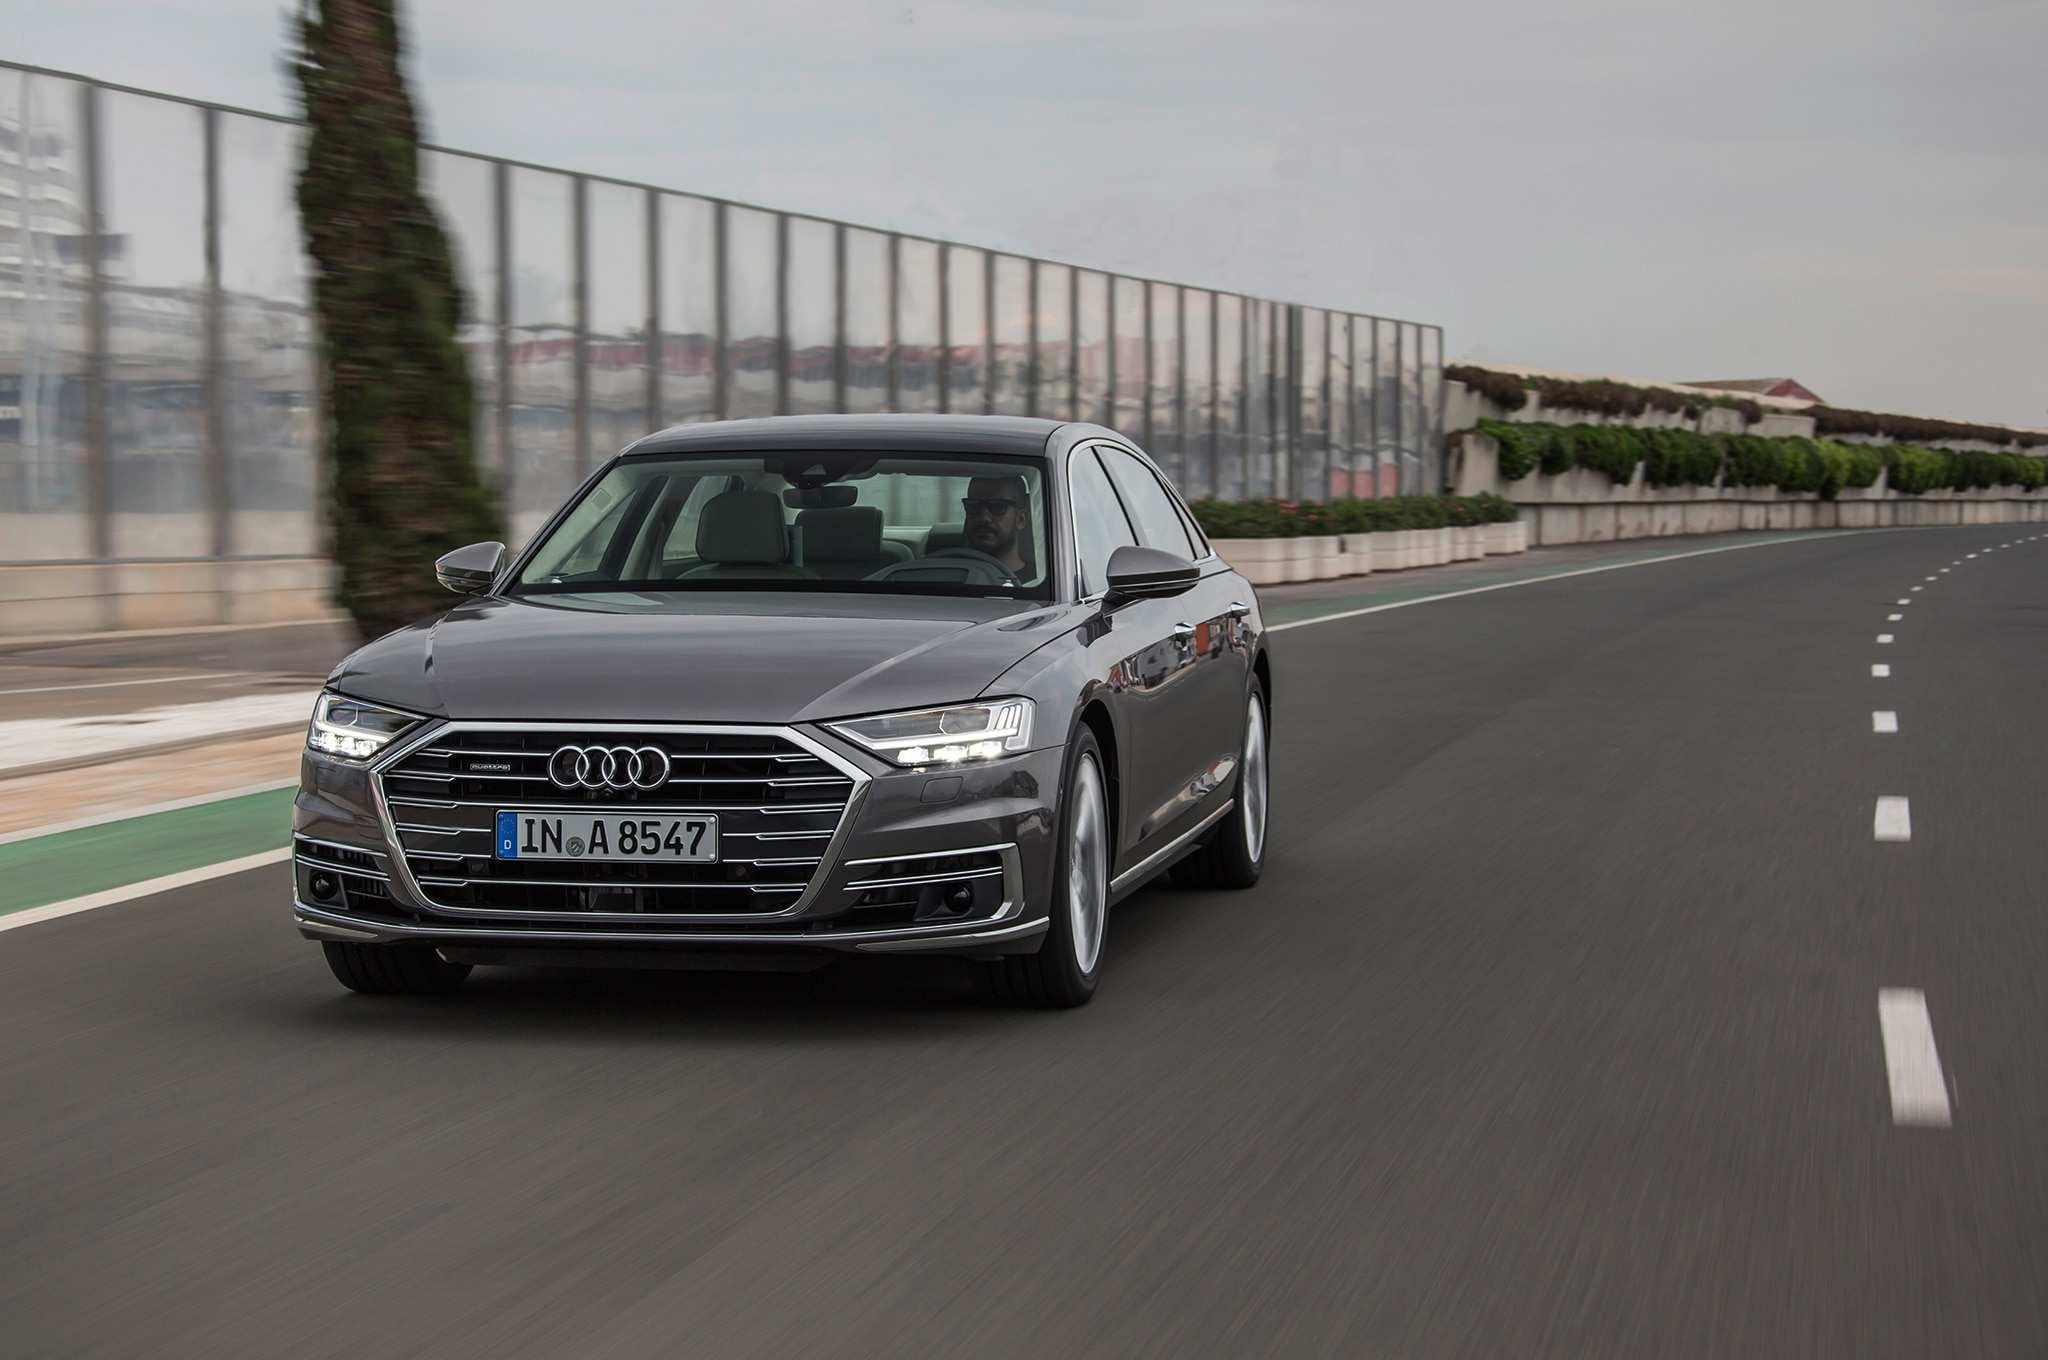 61 Best Review 2019 Audi A8 Features Interior with 2019 Audi A8 Features